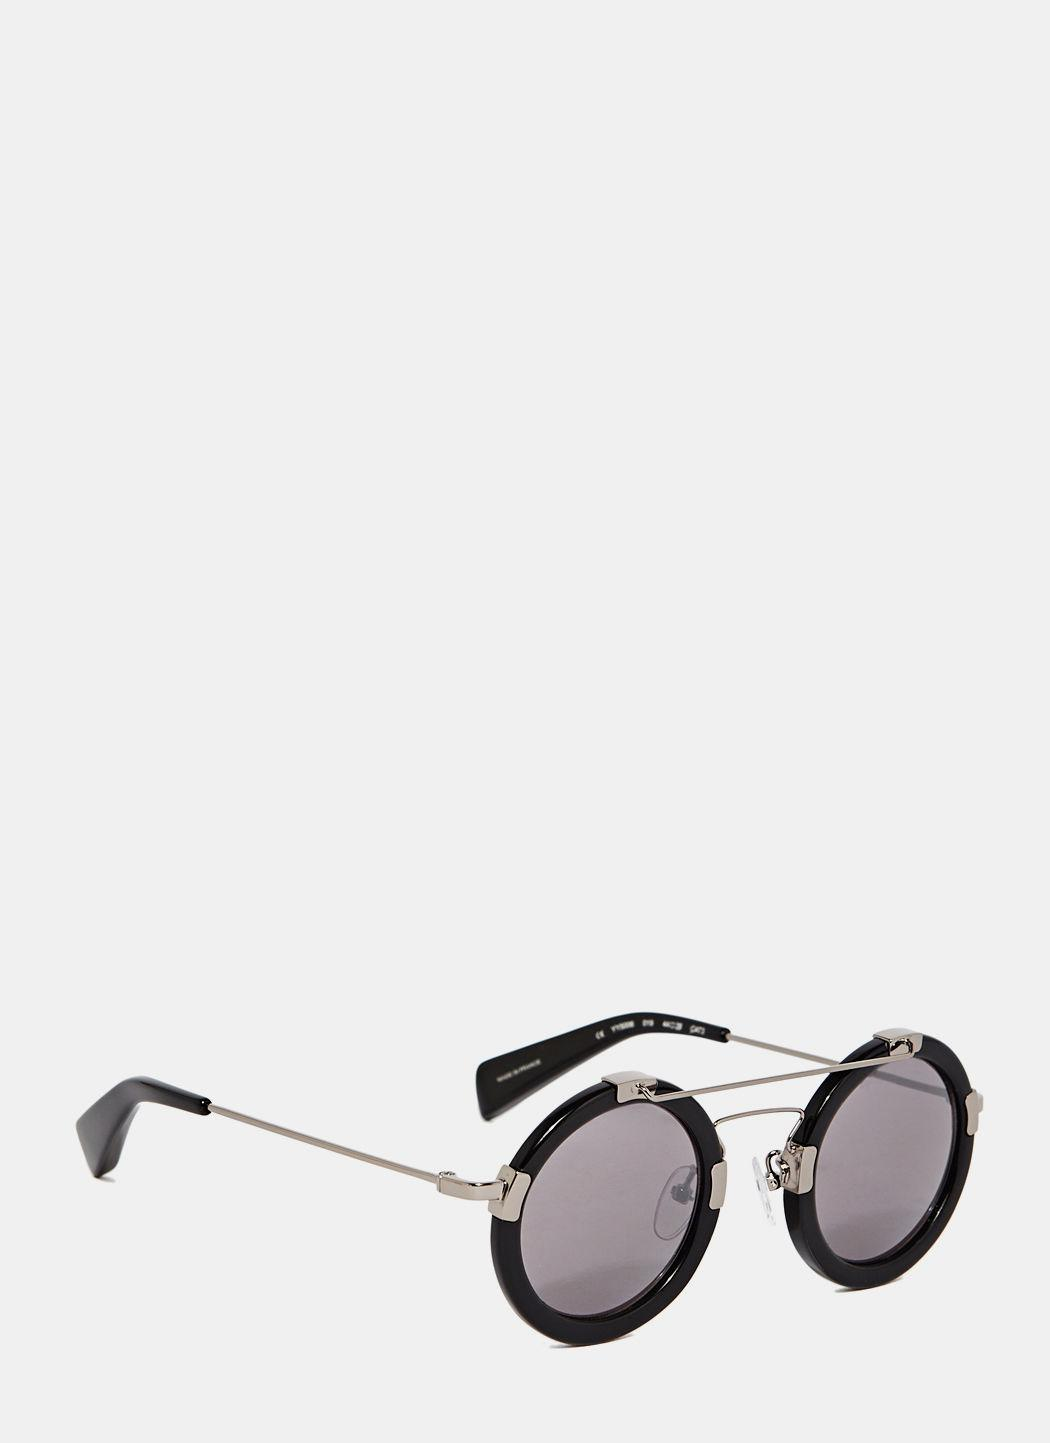 YY5013 Round Matte Sunglasses Yohji Yamamoto 2018 New Sale Online Free Shipping Release Dates Manchester Sale Online Outlet Exclusive gW9MAUR